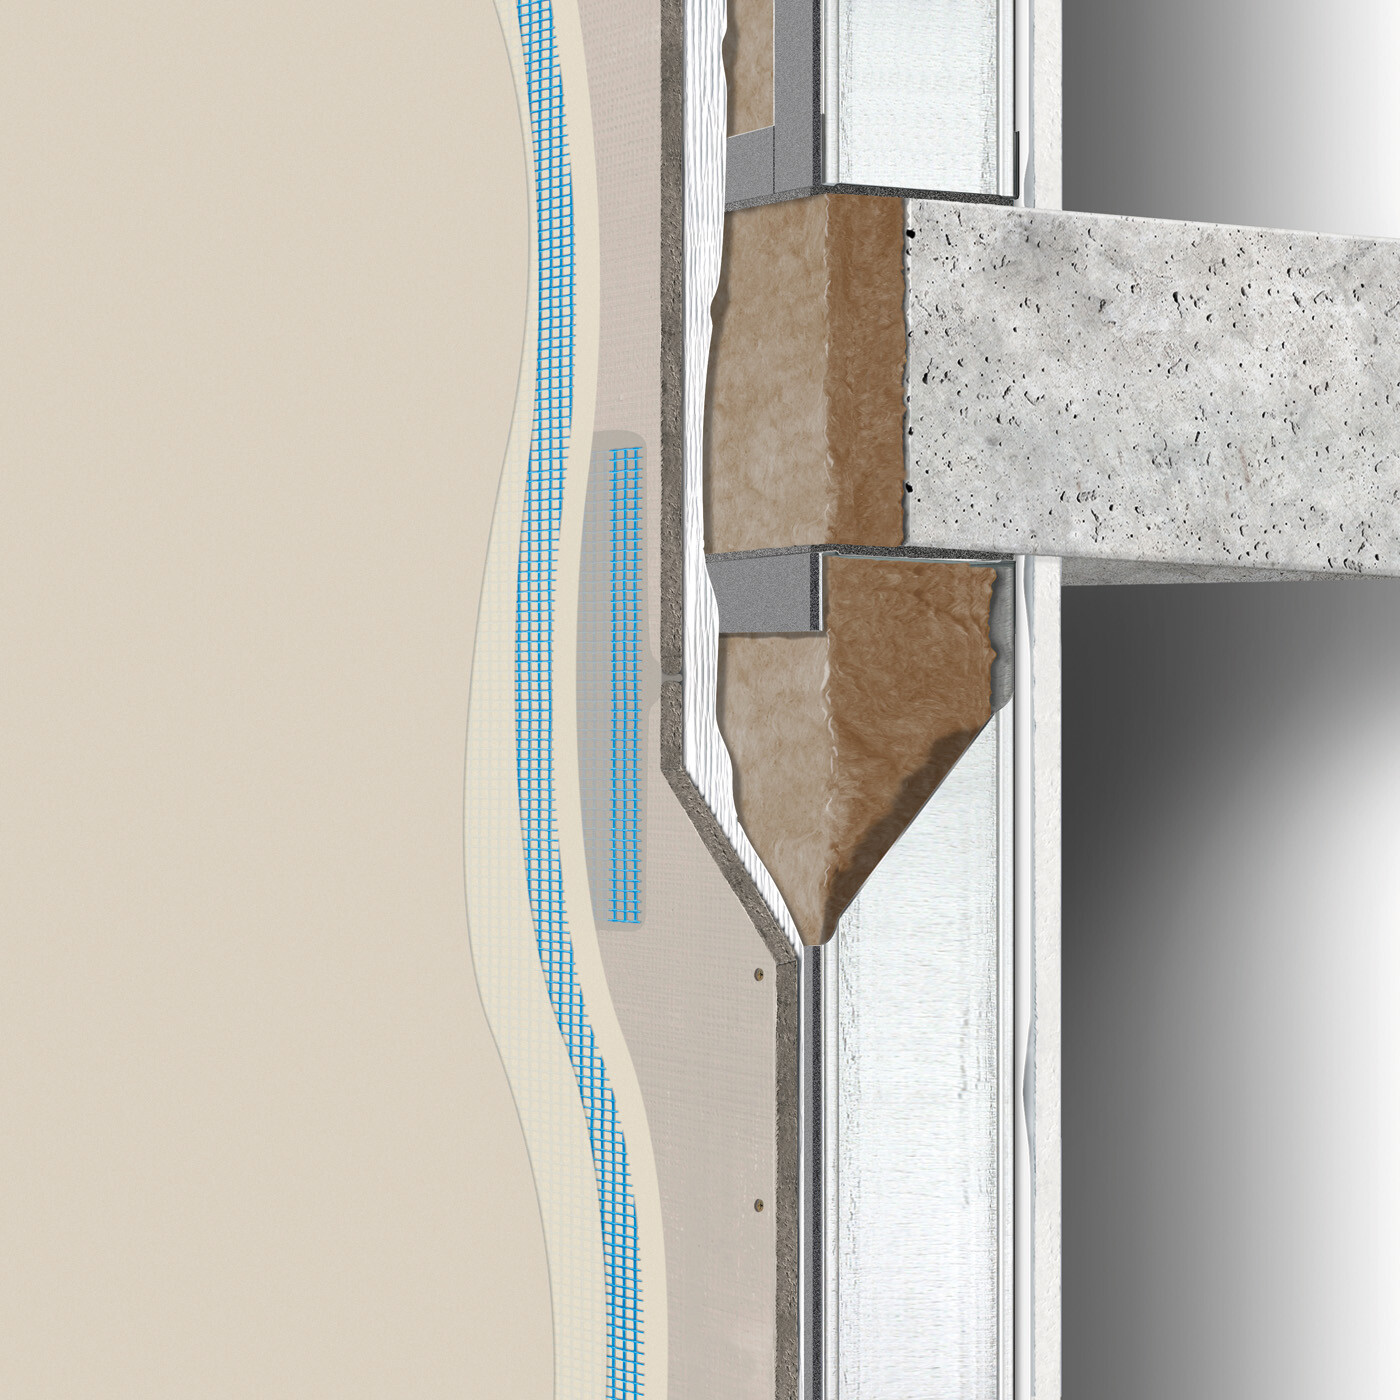 Exterior wall construction directly-applied / water-managed between floors: single stud